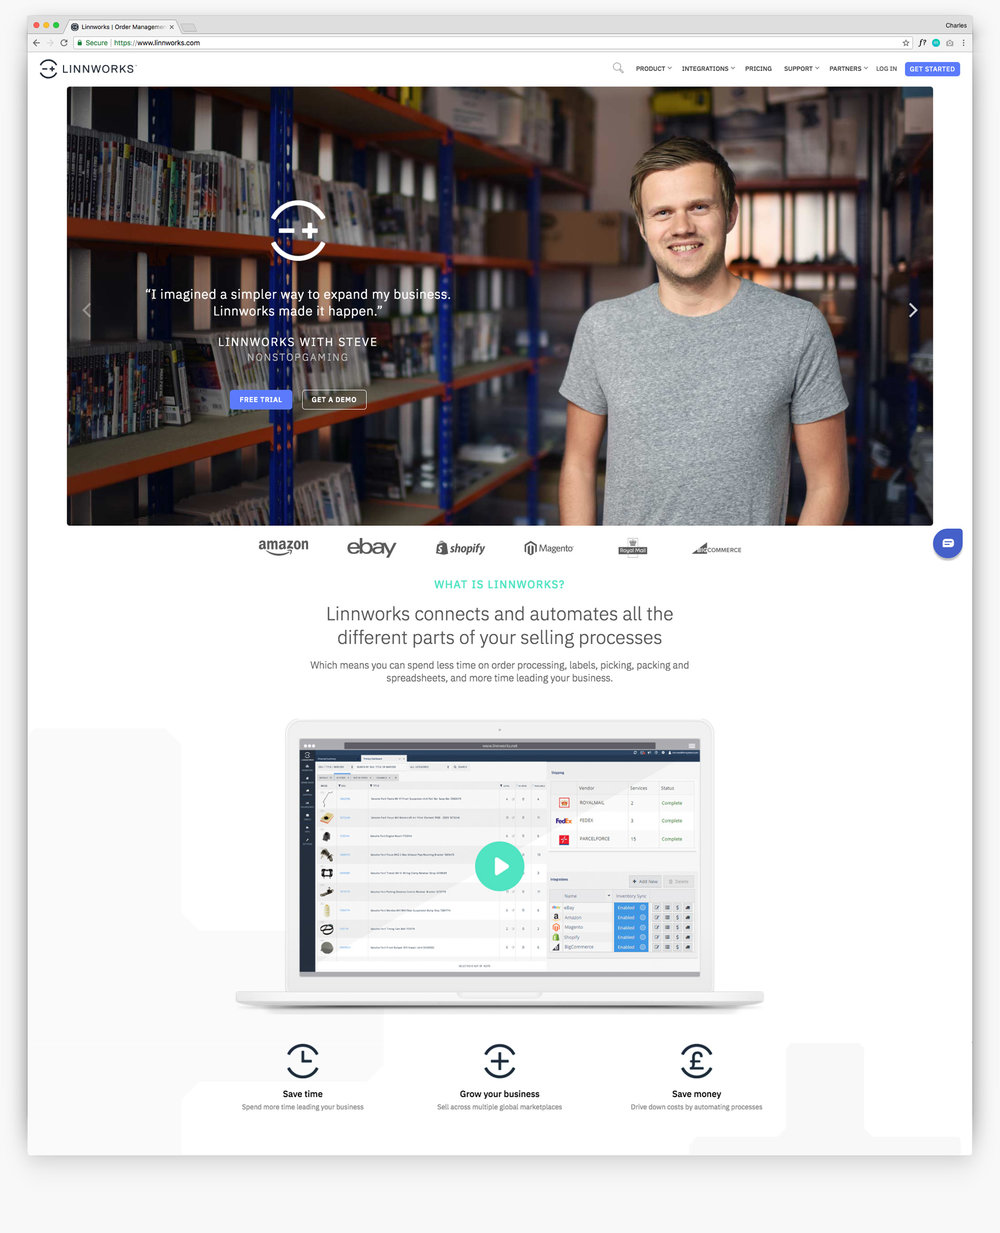 Linnworks-Website-Homepage.jpg